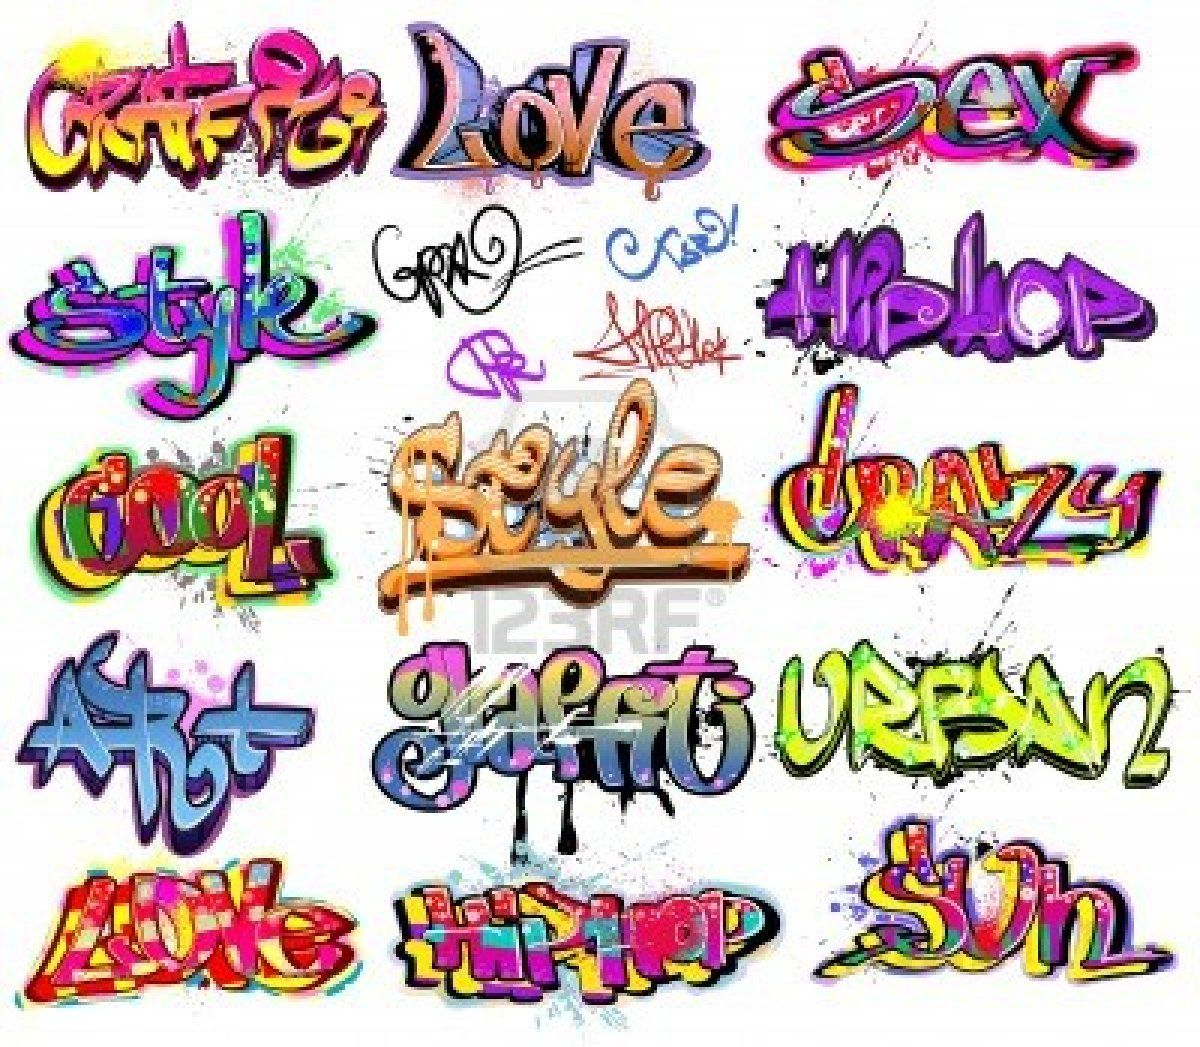 Follow you and other word designs in graffiti style graffiti urban art vector set stock photo 11485963